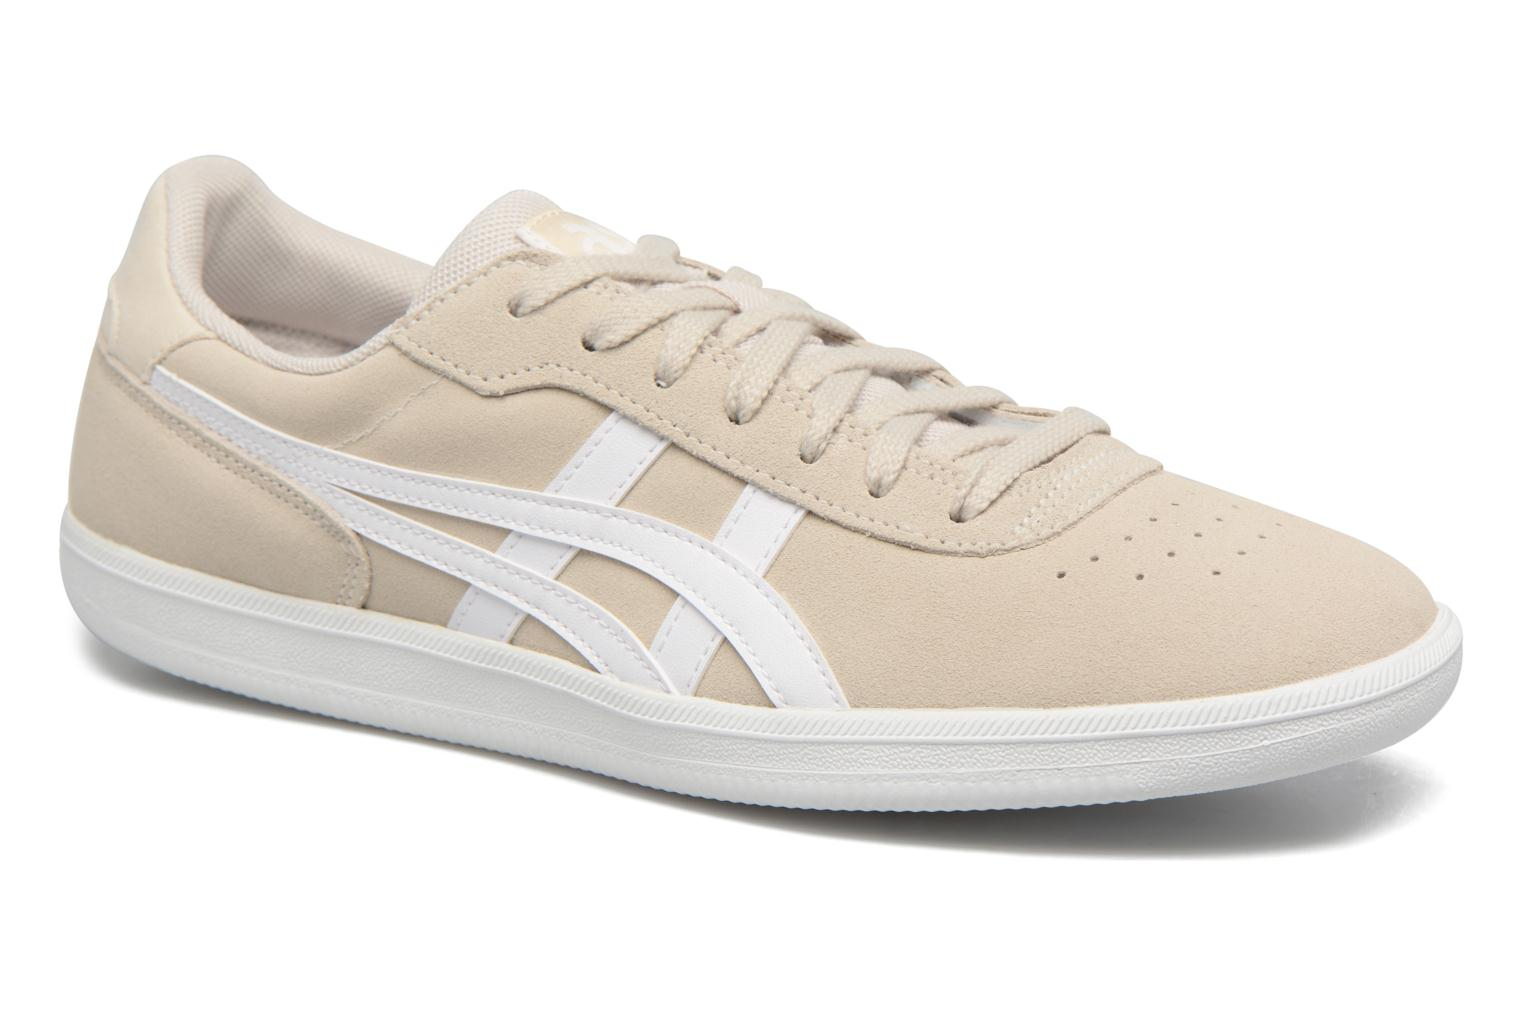 Marques Chaussure homme Asics homme Percussor Trs Birch/White